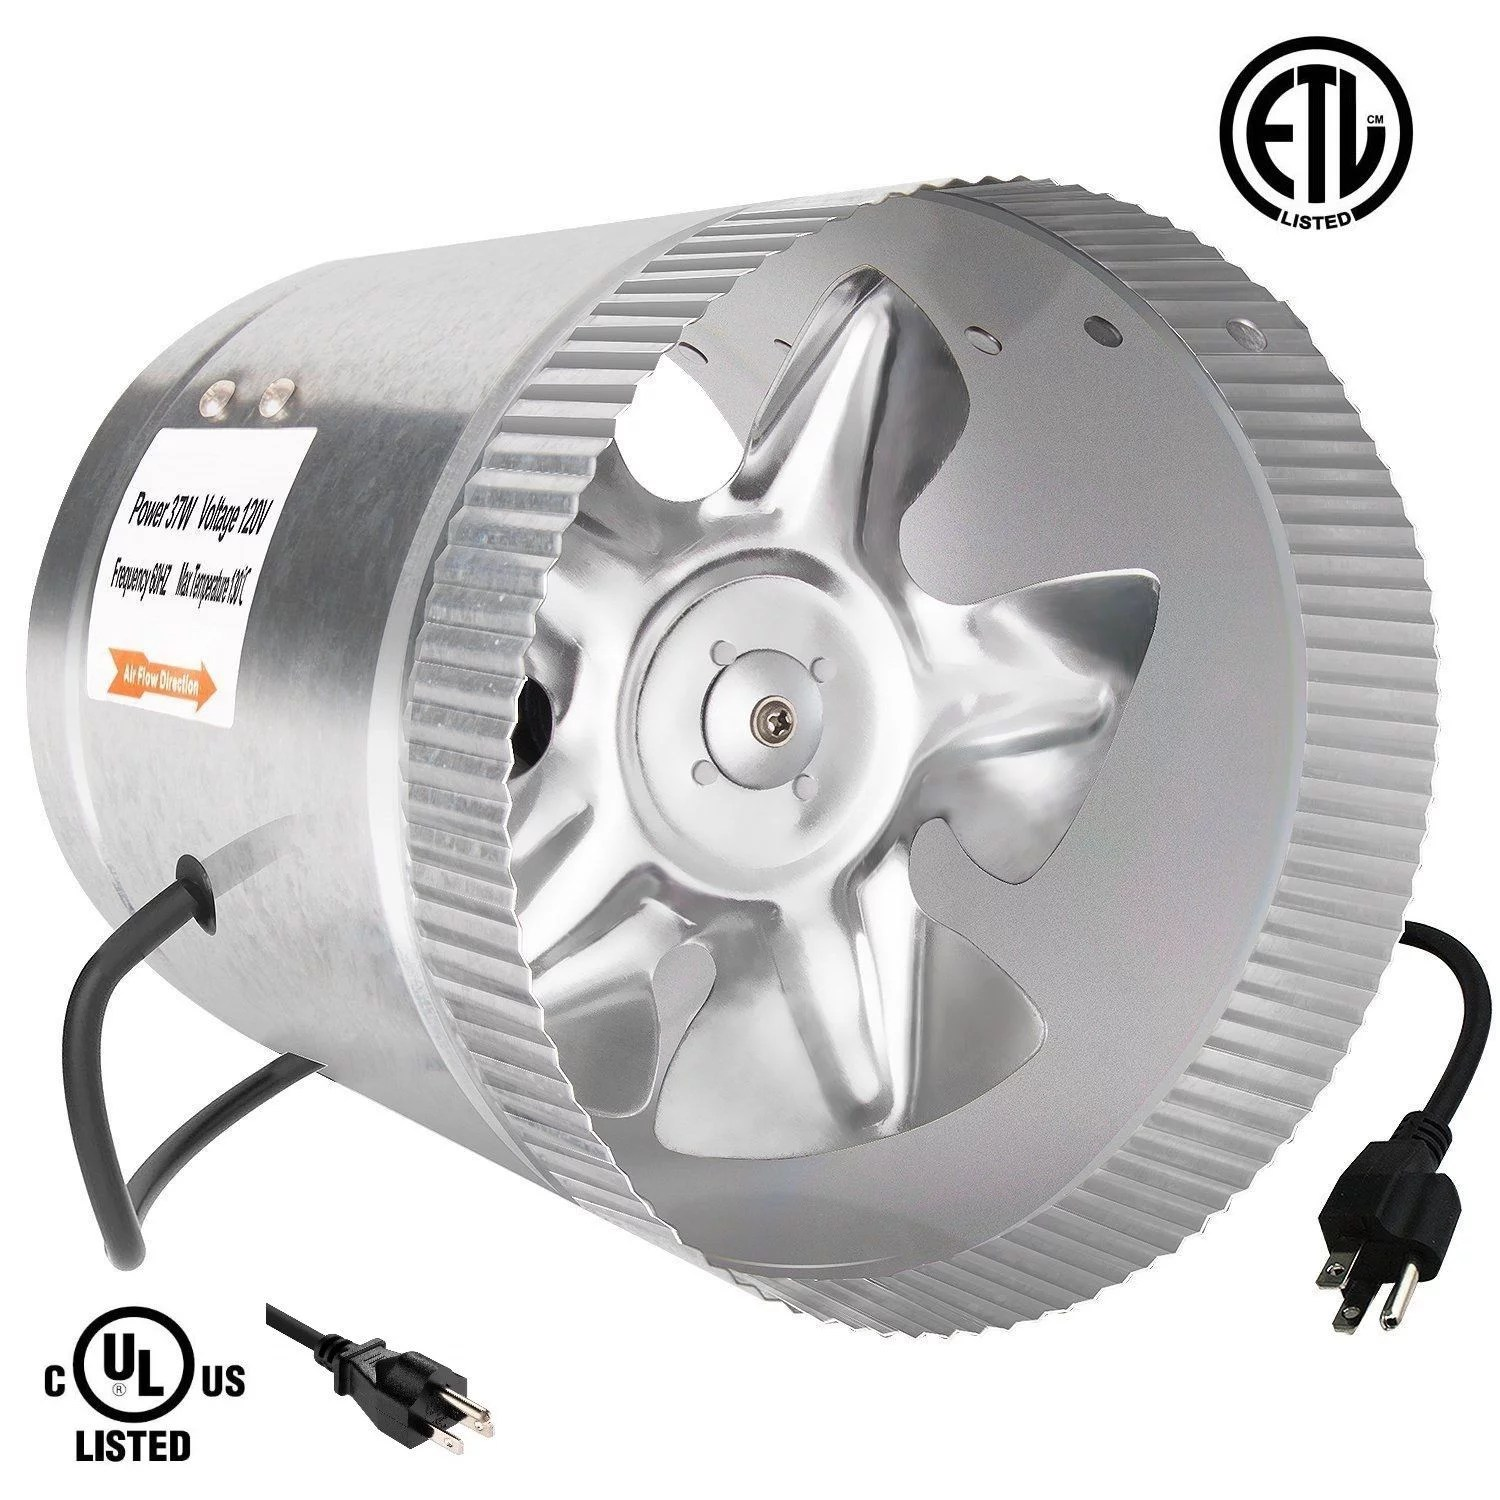 ipower 6 inch 240 cfm booster fan inline duct vent blower for hvac exhaust and intake 5 5 grounded power cord